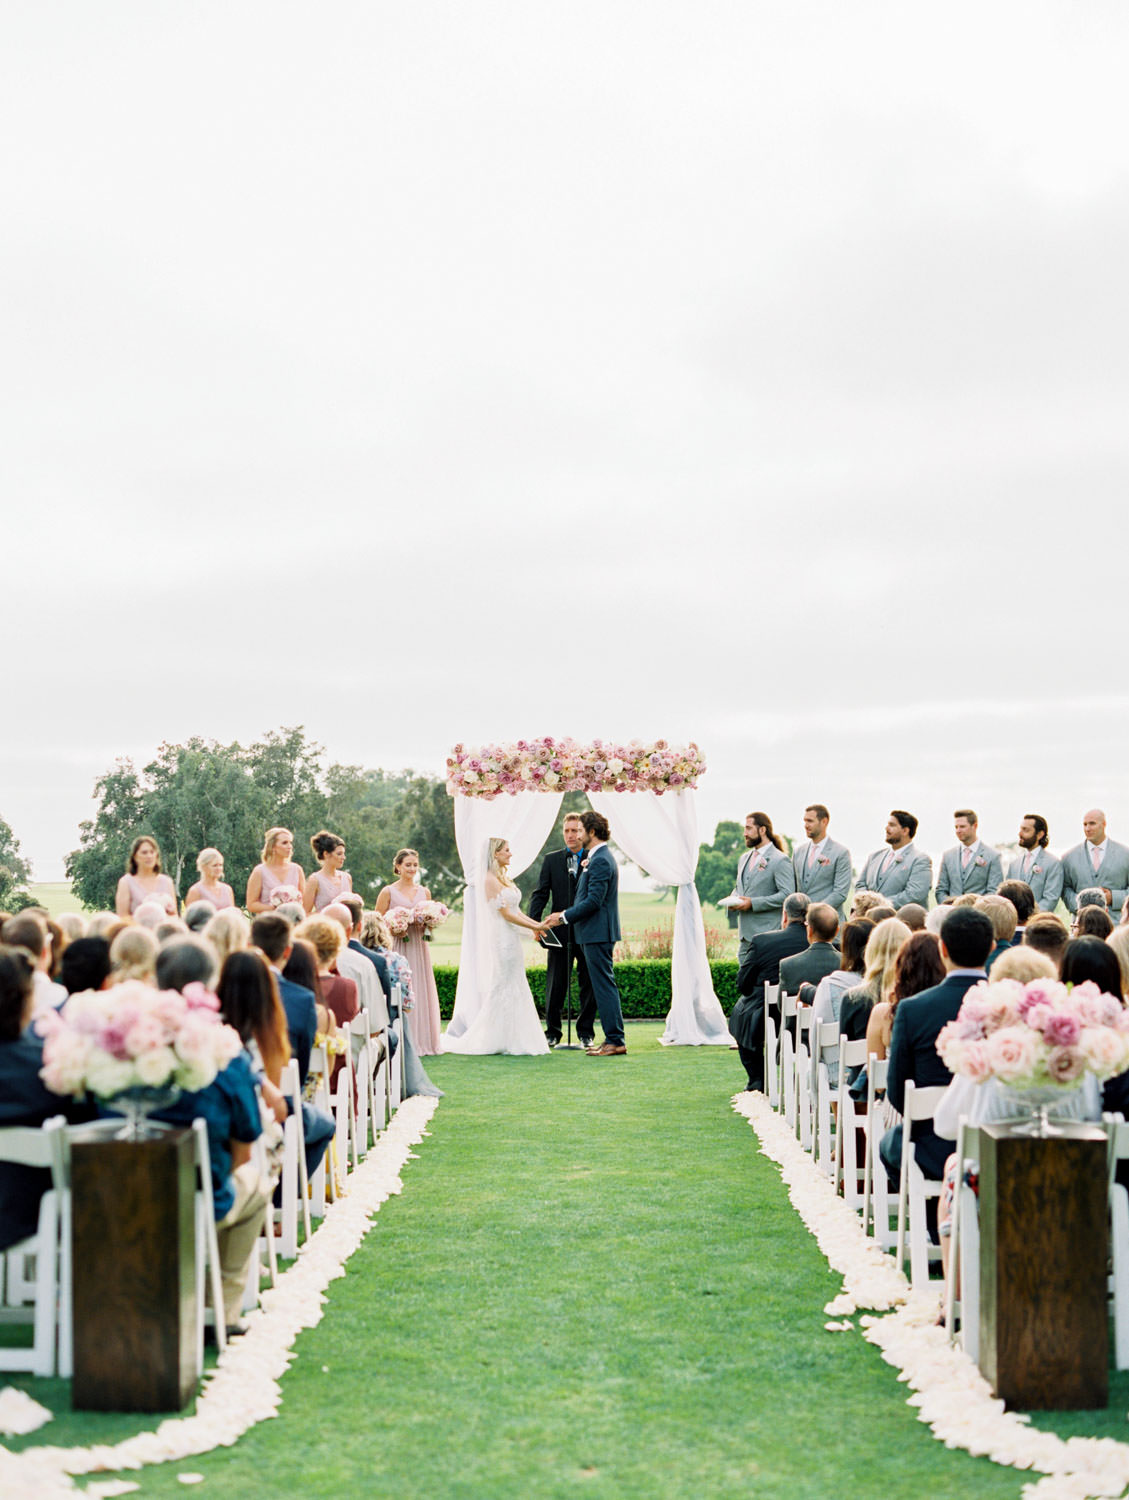 Couple reading vows during ceremony, Ceremony on grassy lawn with white chairs, aisle arrangements with ivory, pink, and lavender arrangements, ceremony white draping with large arrangement of roses on top of the arch, Lodge at Torrey Pines wedding, film photography by Cavin Elizabeth Photography